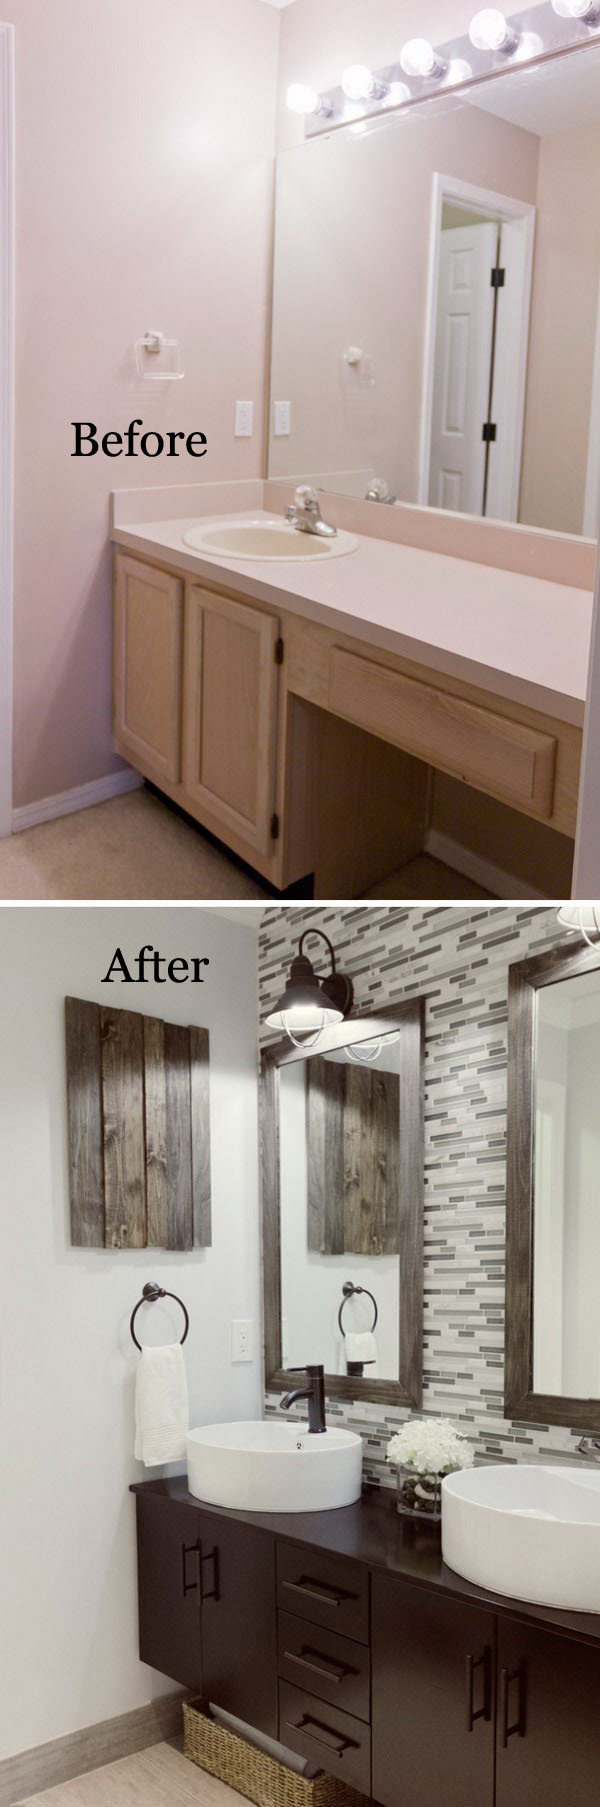 Before and after 20 awesome bathroom makeovers hative for Bath remodel pinterest